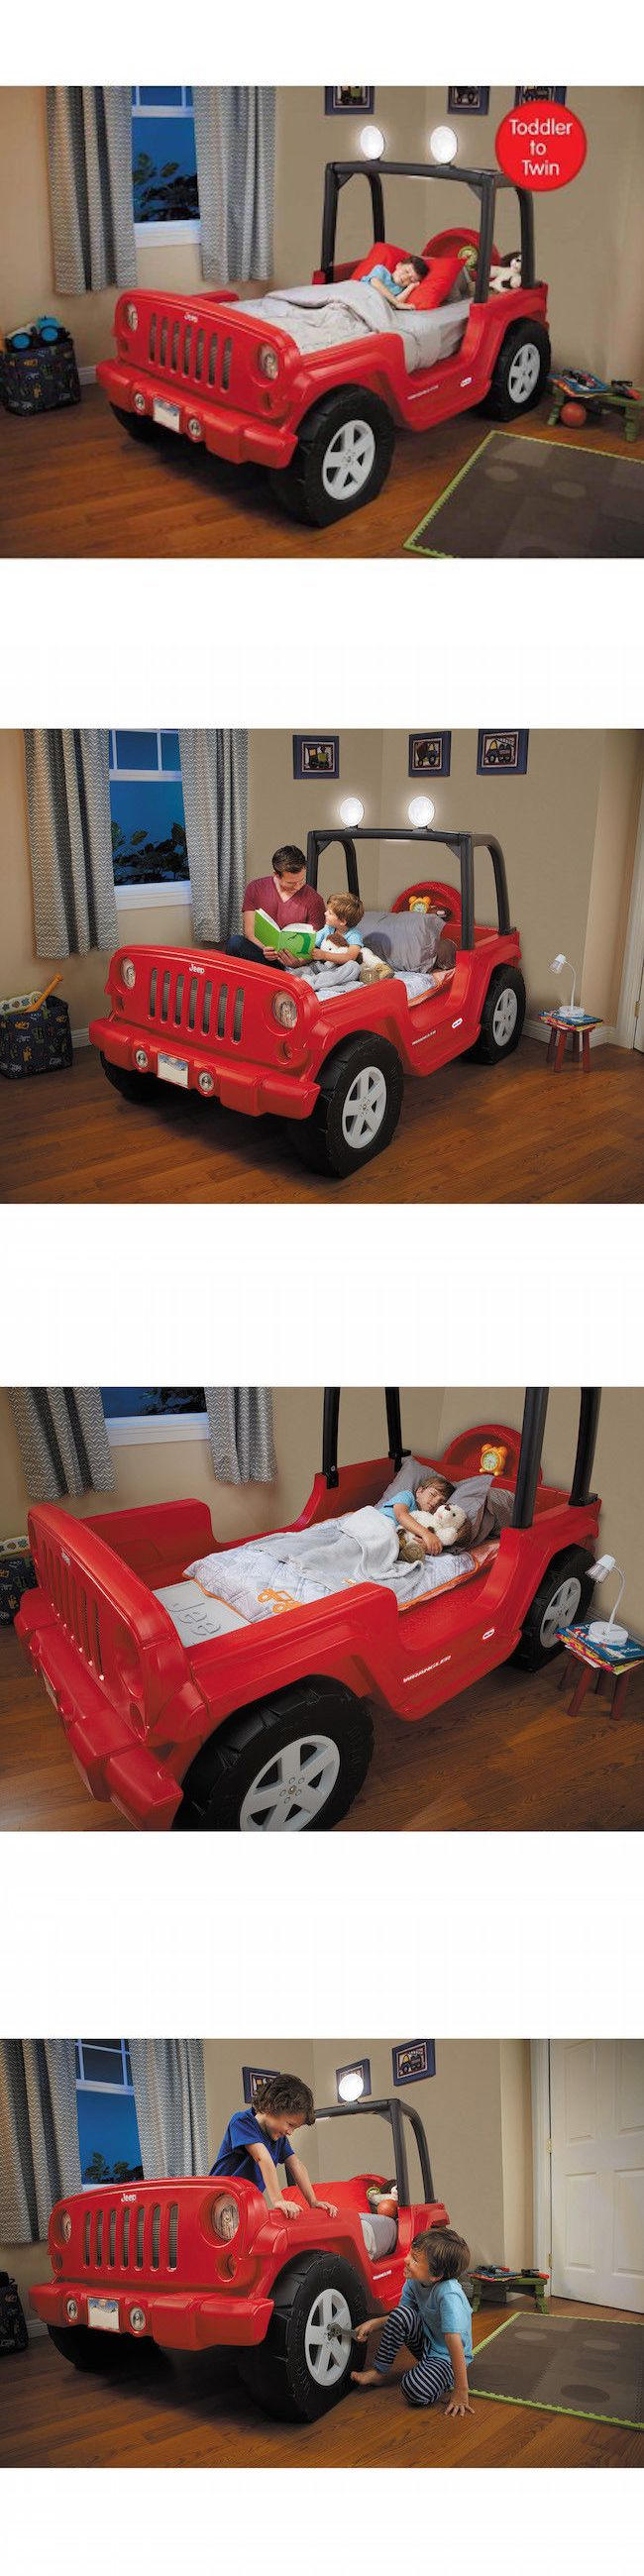 Kids at Home: Car Bed Frame Jeep Toddler Twin Kids Girls Boys Bedroom Furniture Storage Under -> BUY IT NOW ONLY: $434.99 on eBay!